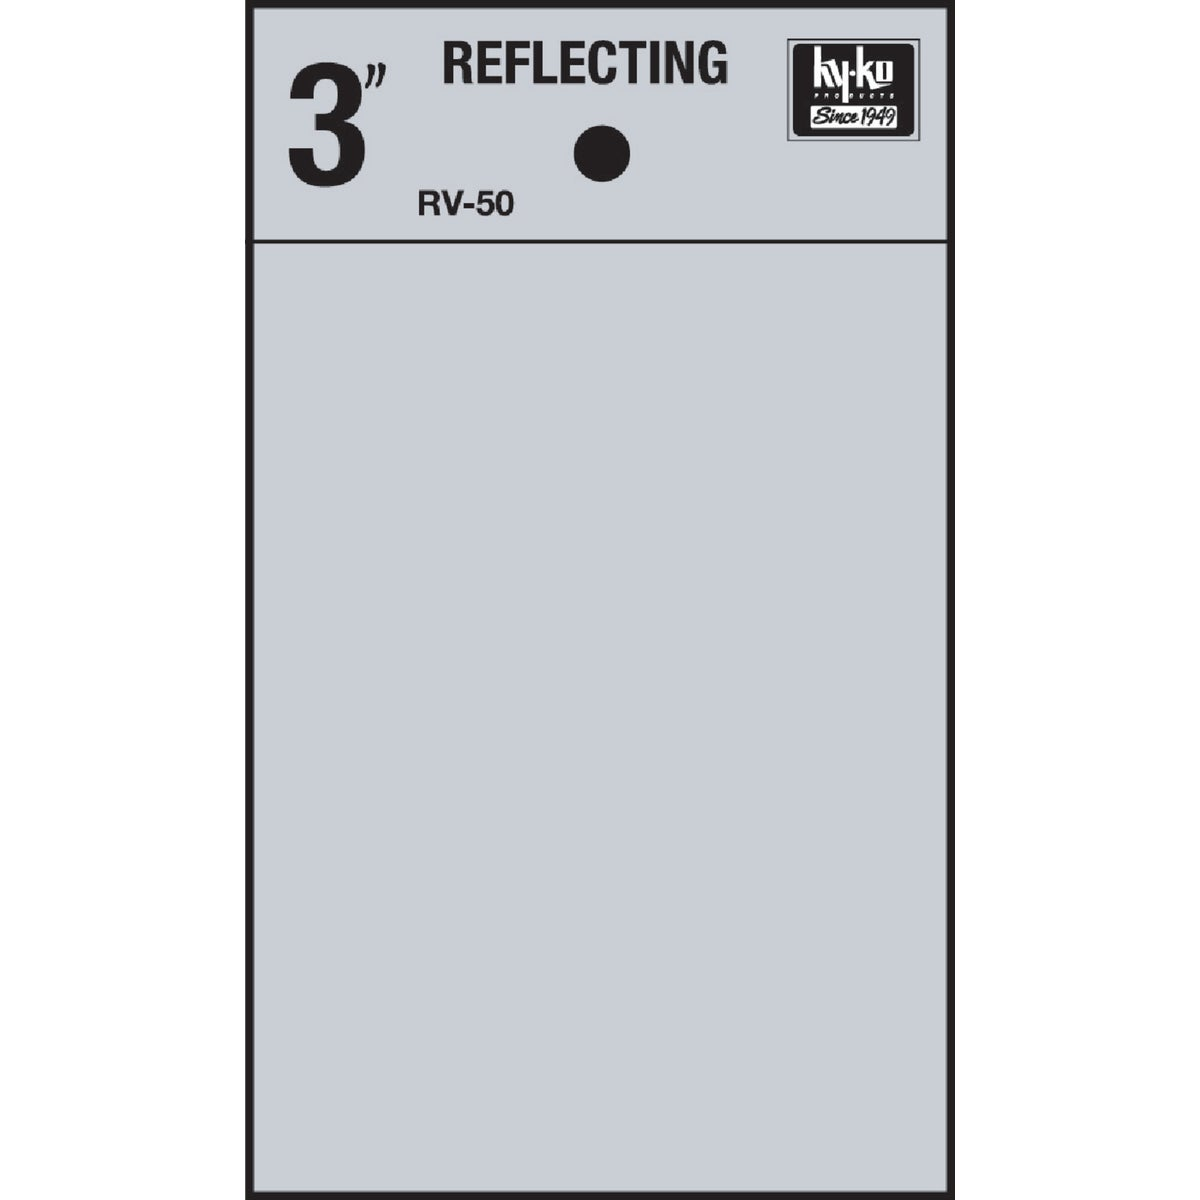 "3"" REFLECT BLANK - RV-50/BL by Hy Ko Prods Co"